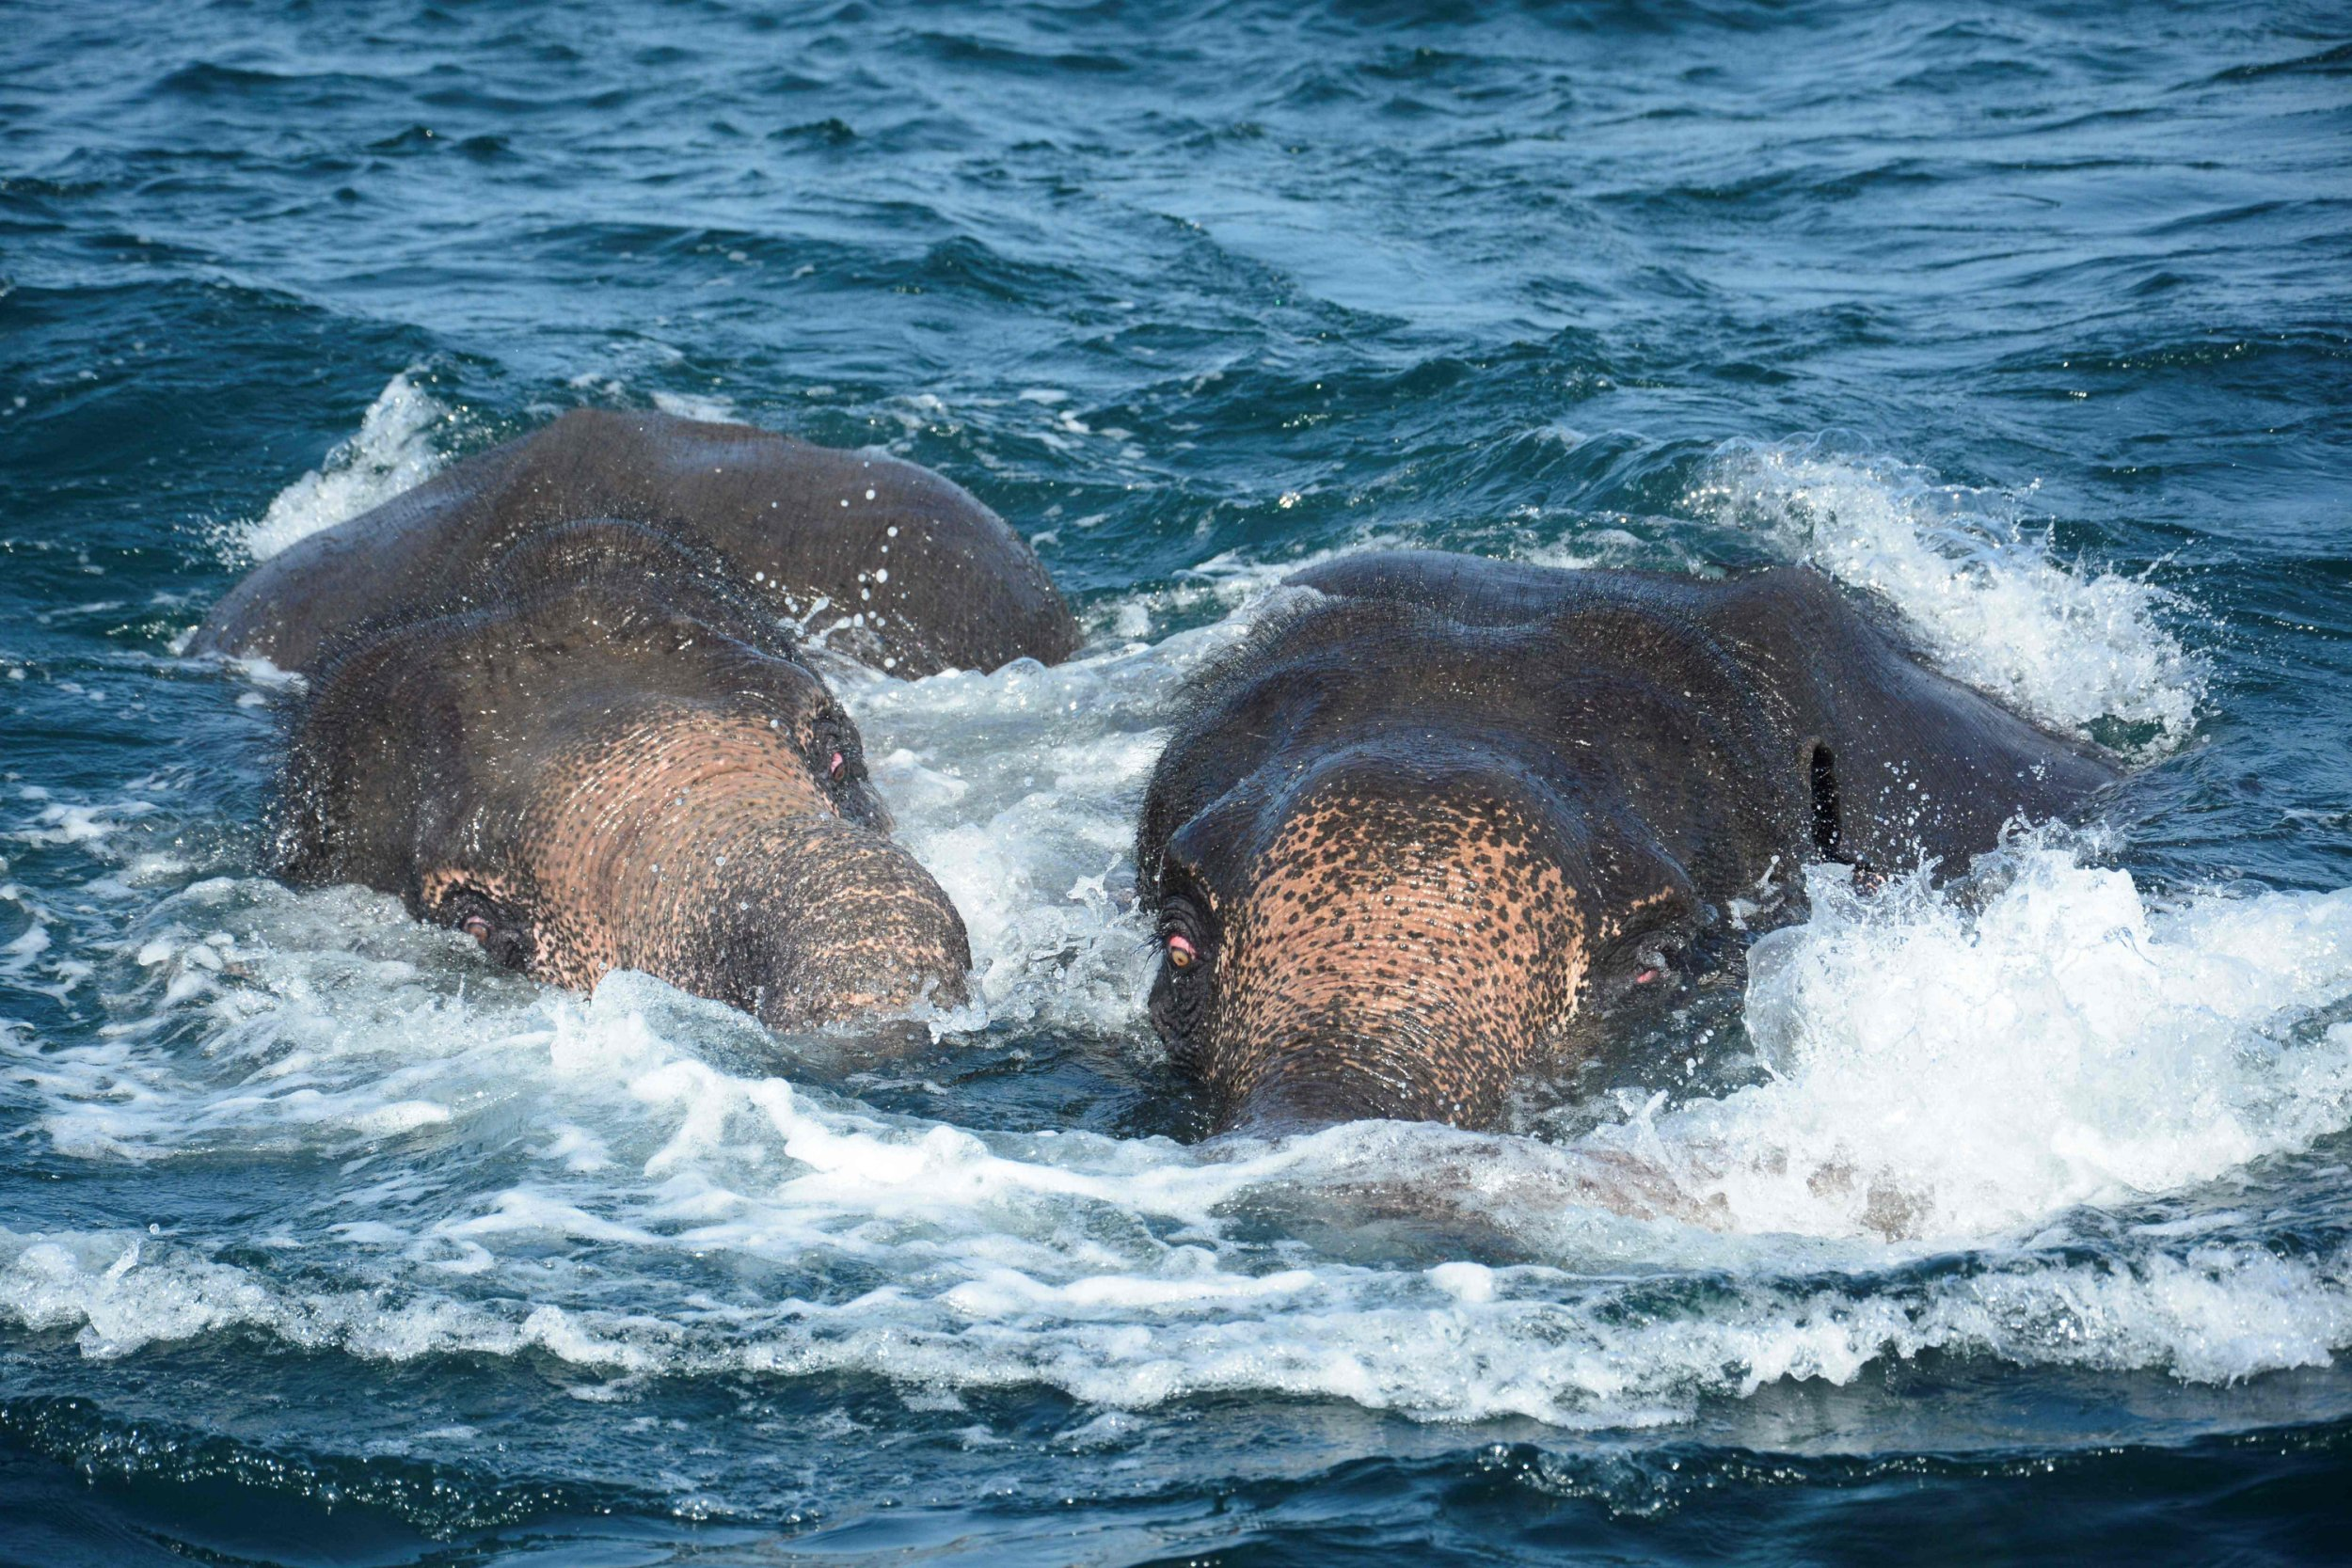 """In this handout photograph released by the Sri Lankan Navy on July 23, 2017, elephants spotted struggling to stay afloat in deep water swim as they are guided by Sri Lankan navel personnel back to shore a kilometre off the island's northeast coast. Two young elephants washed out to sea were saved from drowning July 23 by the Sri Lankan navy in the second such incident off the island in as many weeks. The navy said the pair of wild elephants were brought ashore after a """"mammoth effort"""" involving navy divers, ropes and a flotilla of boats to tow them back to shallow waters. RESTRICTED TO EDITORIAL USE - MANDATORY CREDIT """"AFP PHOTO / SRI LANKAN NAVY"""" - NO MARKETING NO ADVERTISING CAMPAIGNS - DISTRIBUTED AS A SERVICE TO CLIENTS - NO ARCHIVE - XGTY / AFP PHOTO / STR / RESTRICTED TO EDITORIAL USE - MANDATORY CREDIT """"AFP PHOTO / SRI LANKAN NAVY"""" - NO MARKETING NO ADVERTISING CAMPAIGNS - DISTRIBUTED AS A SERVICE TO CLIENTS - NO ARCHIVE - XGTYSTR/AFP/Getty Images"""